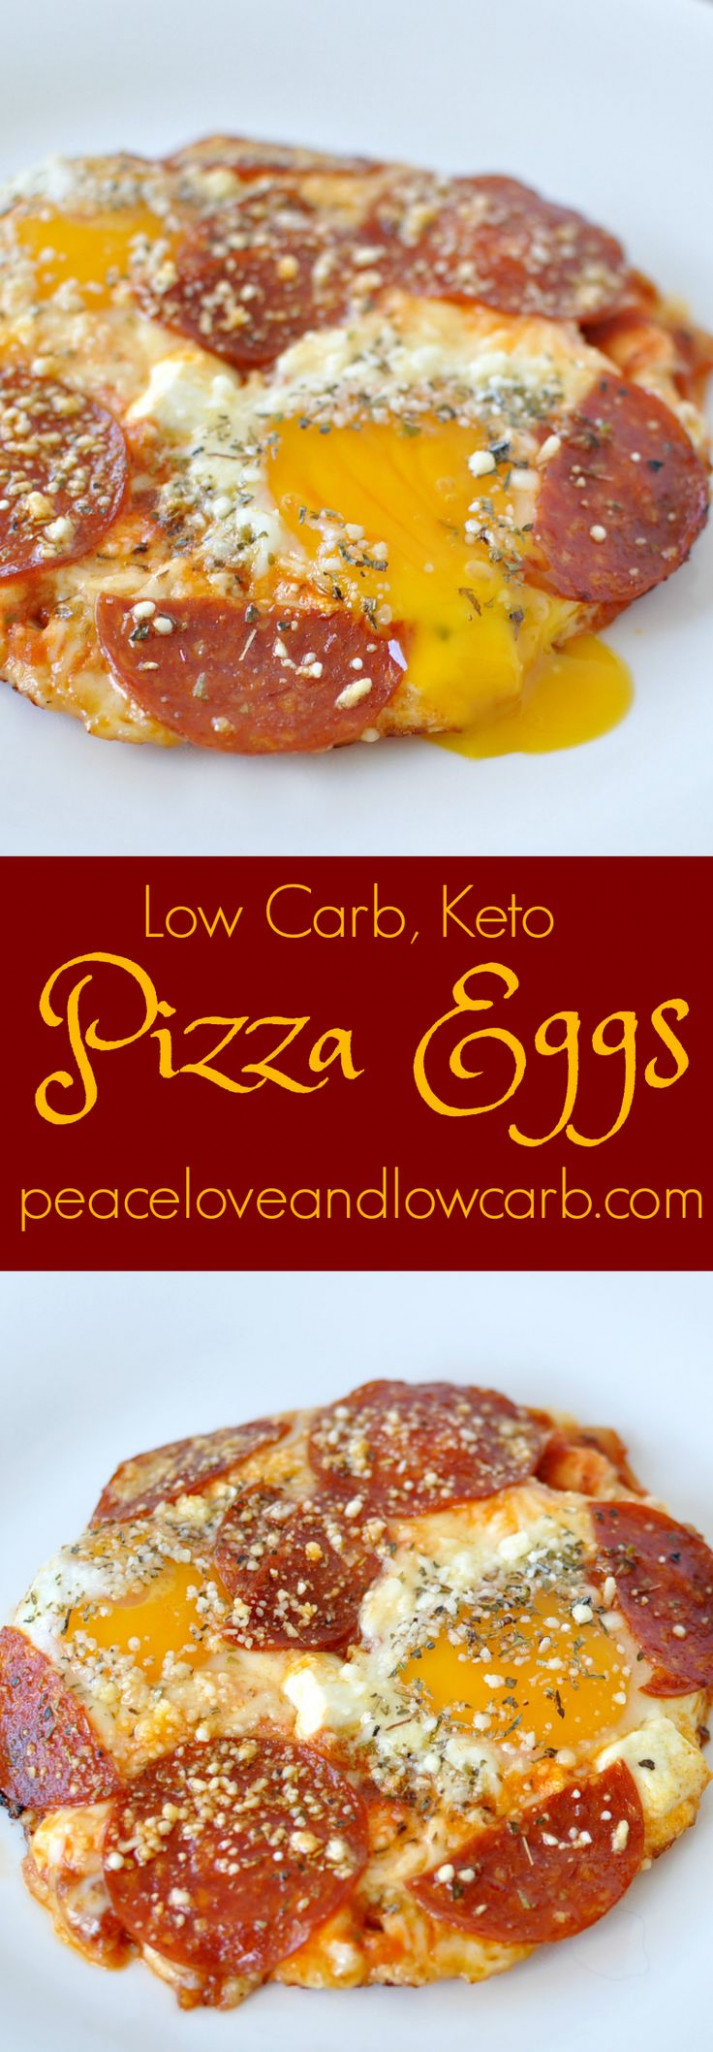 Pizza Eggs – Low Carb, Keto | Peace Love and Low Carb ..